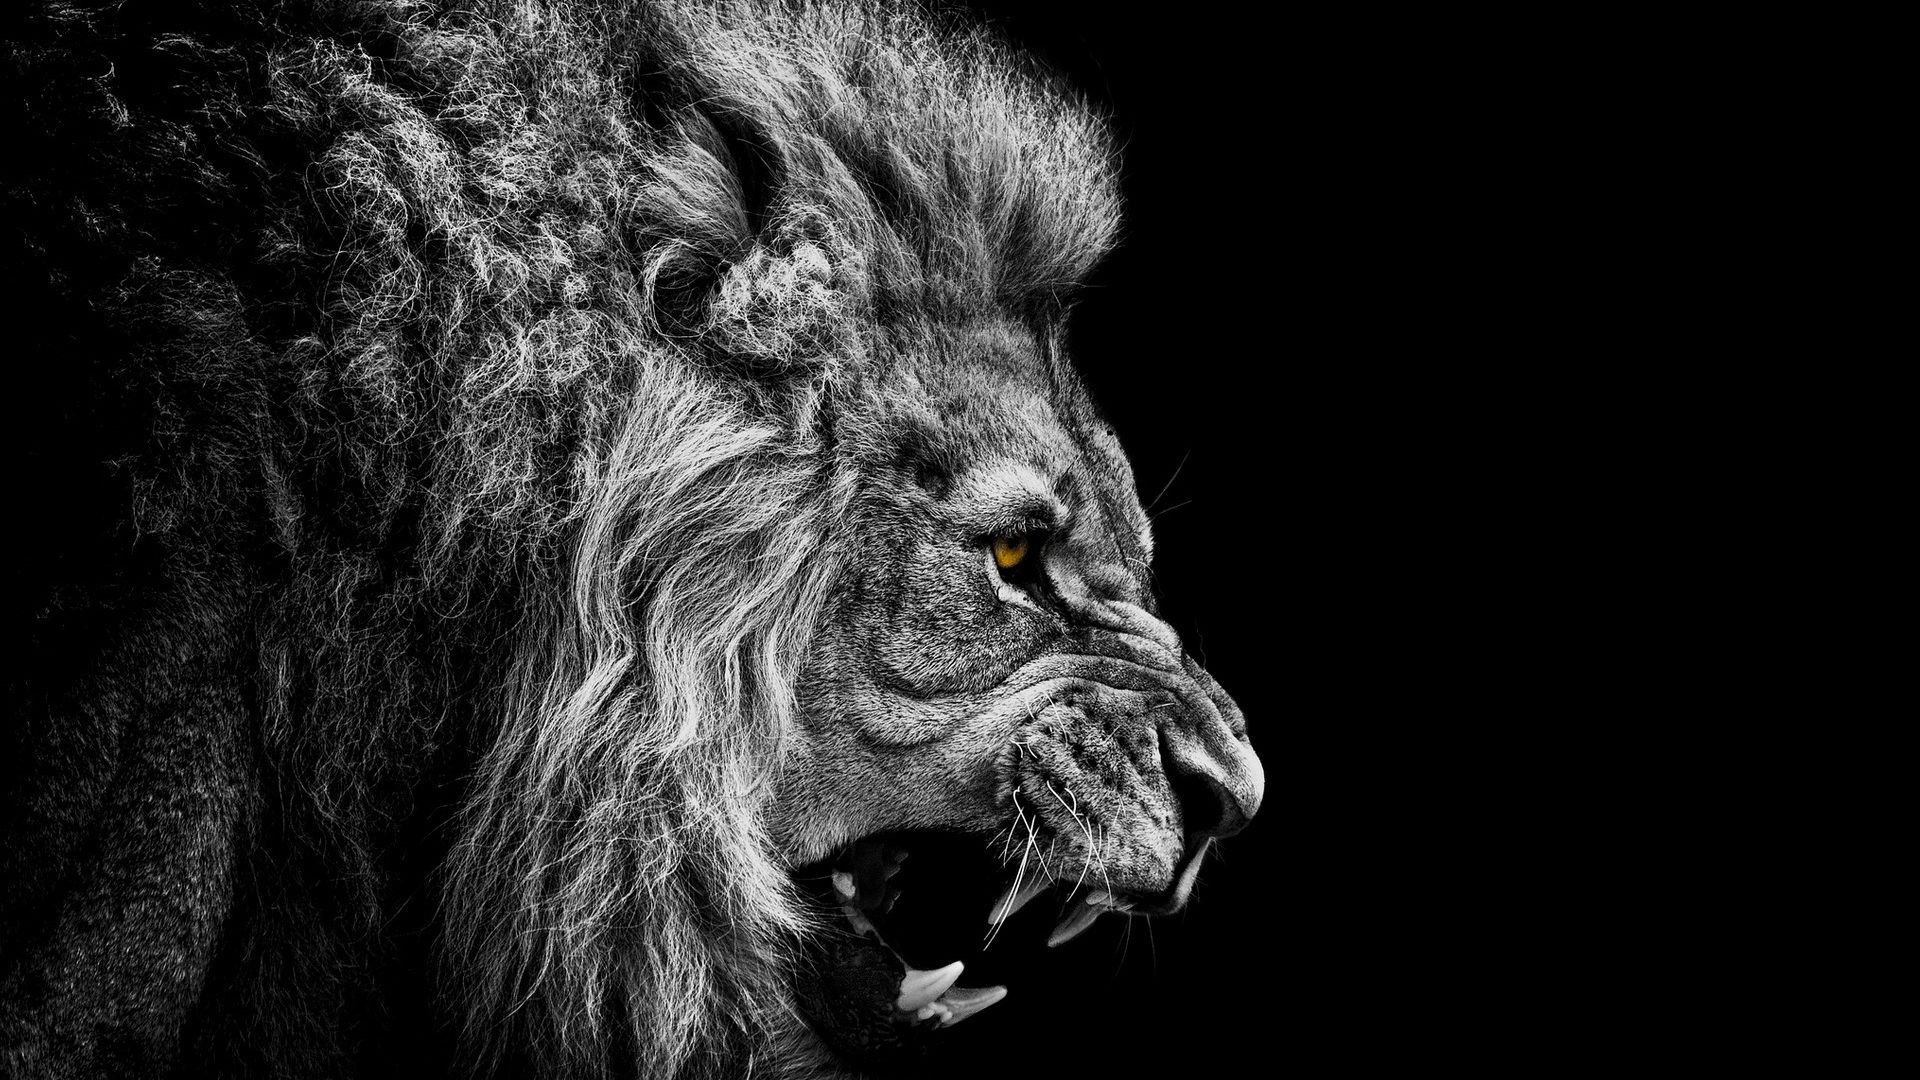 Furious Lion Wallpaper HD 1023.1 Kb